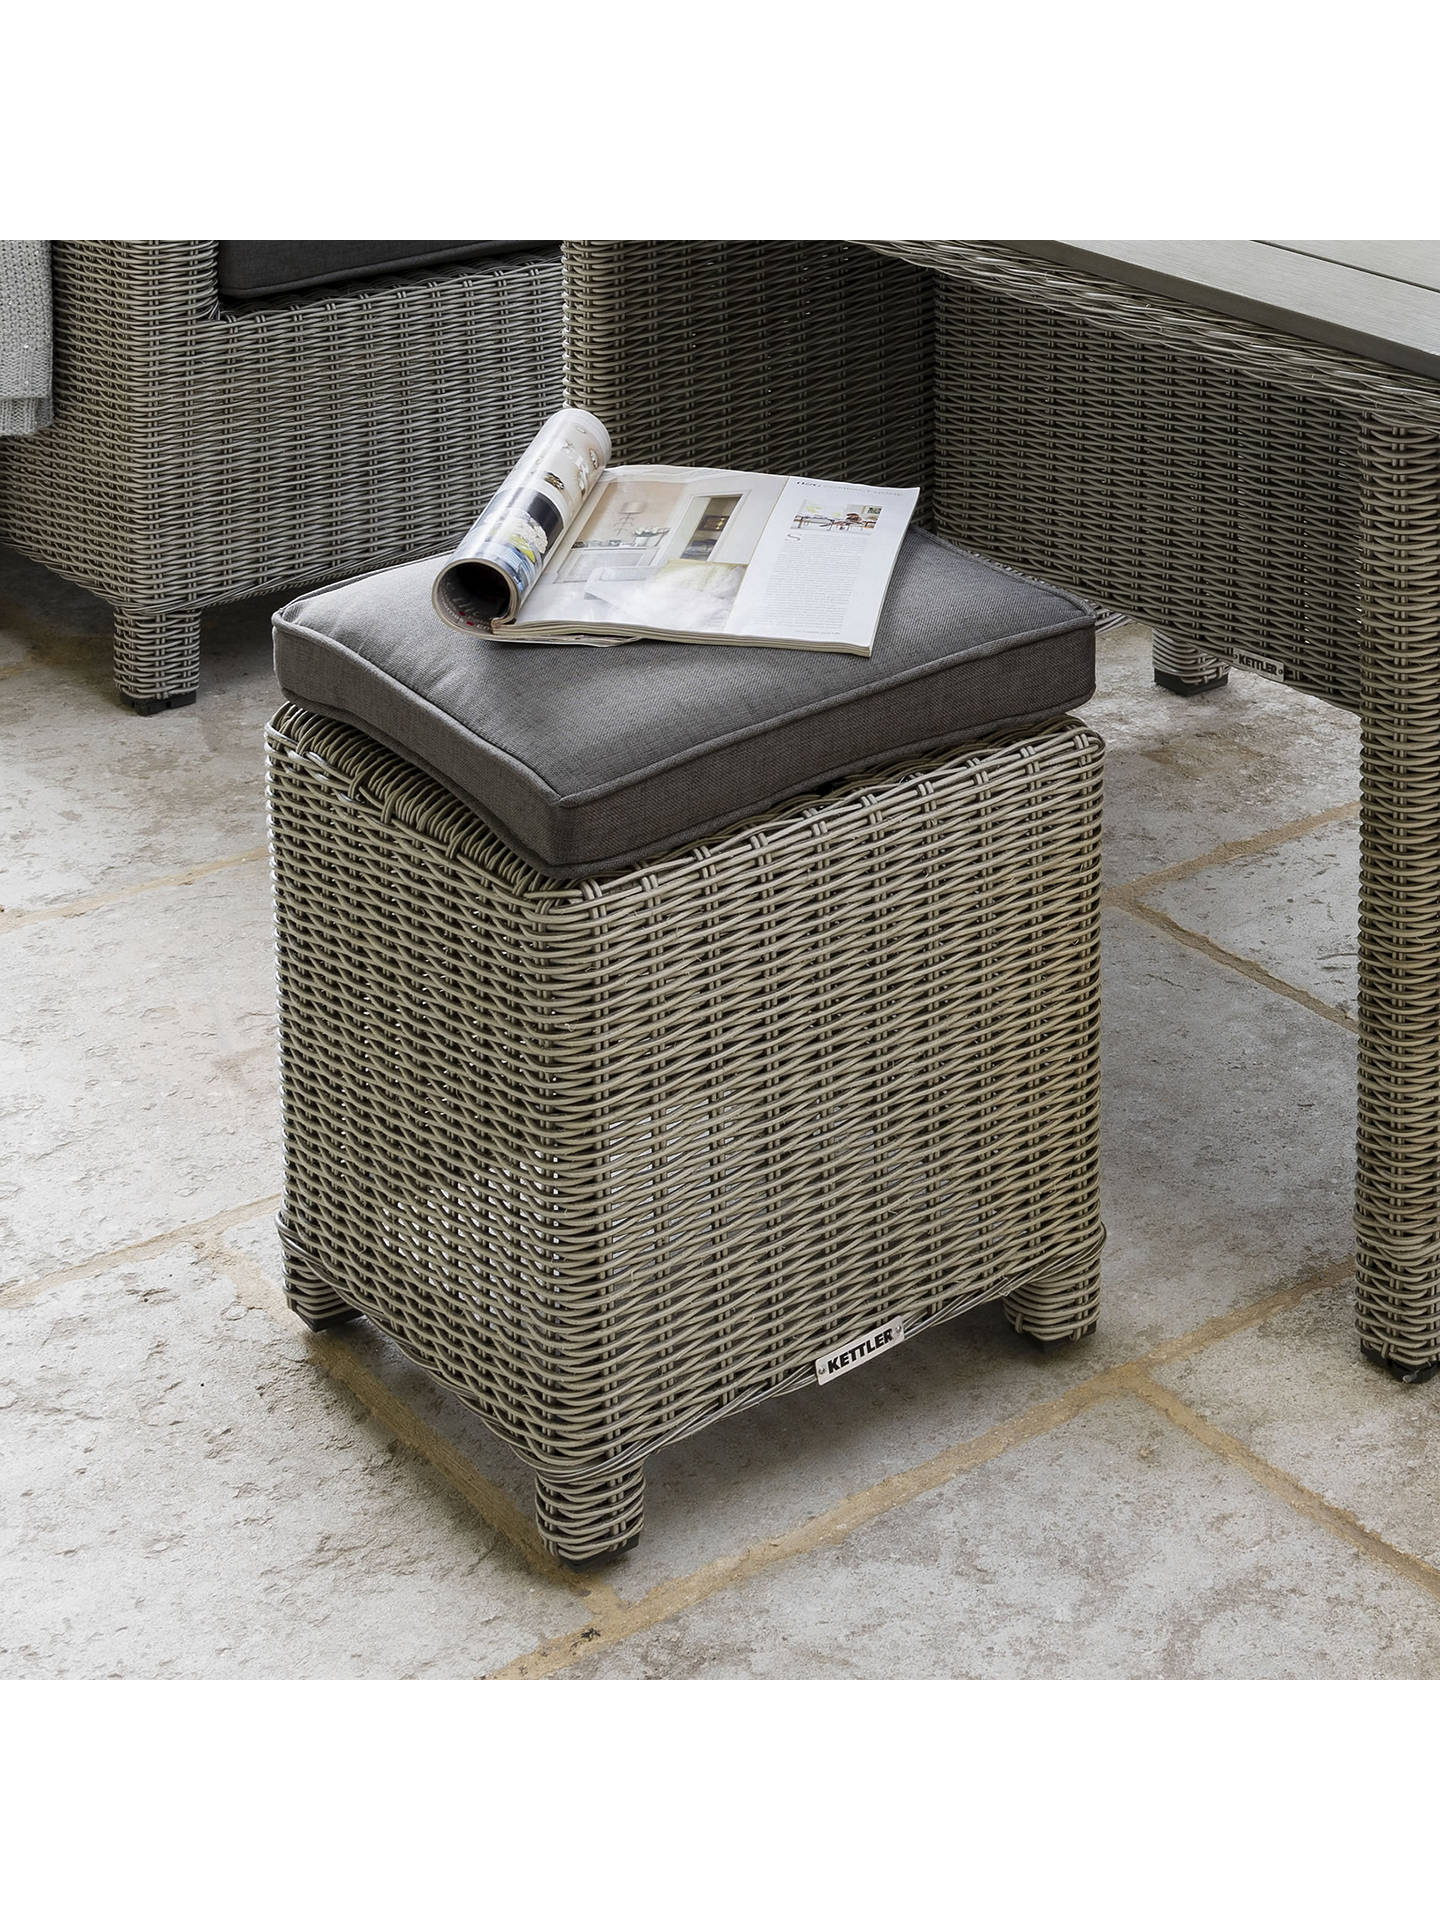 Buy KETTLER Palma Garden Foot Stool with Cushion, White Wash Online at johnlewis.com